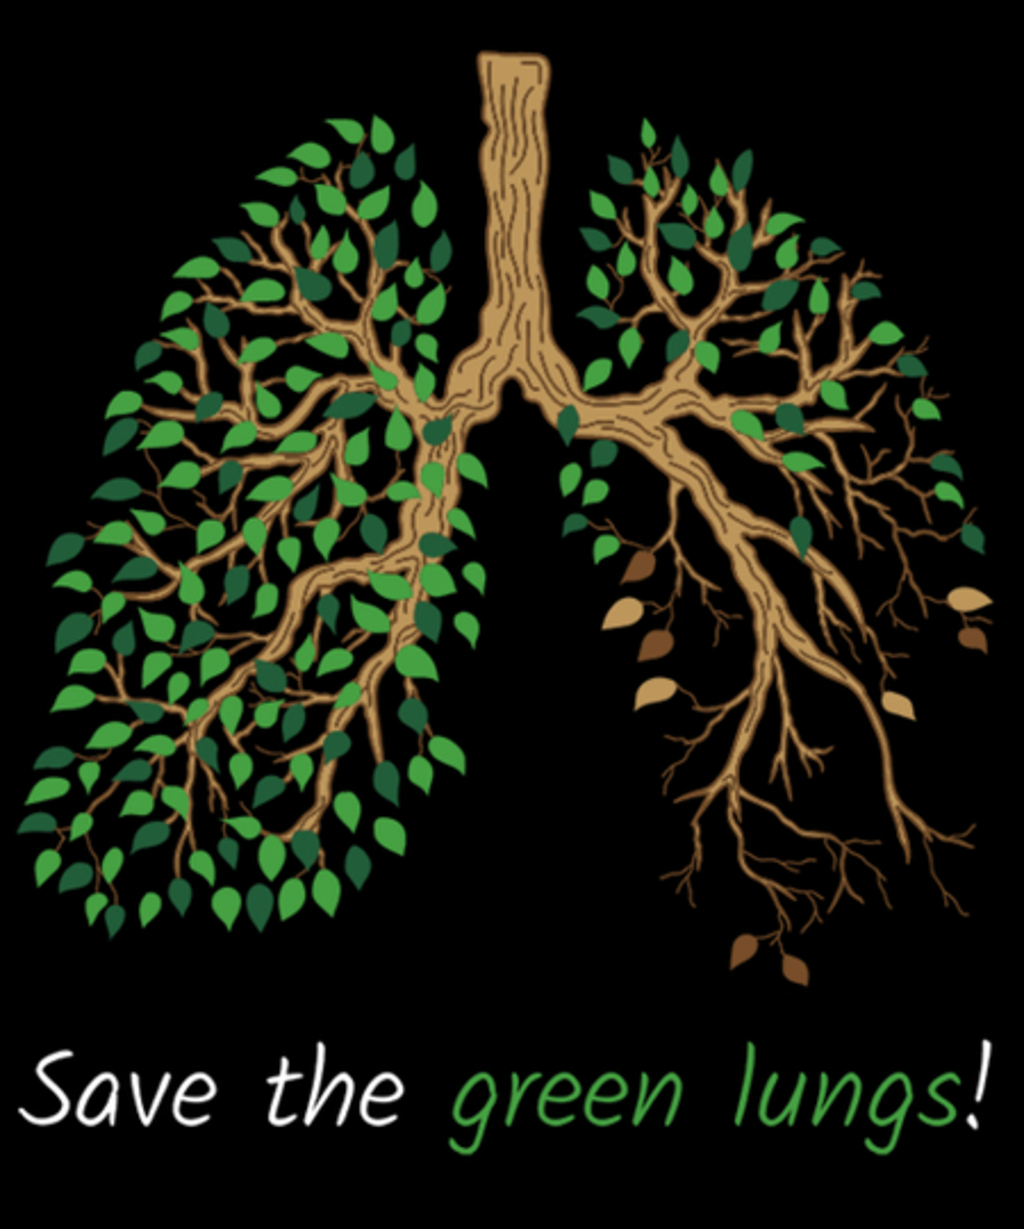 Qwertee: Save the green lungs